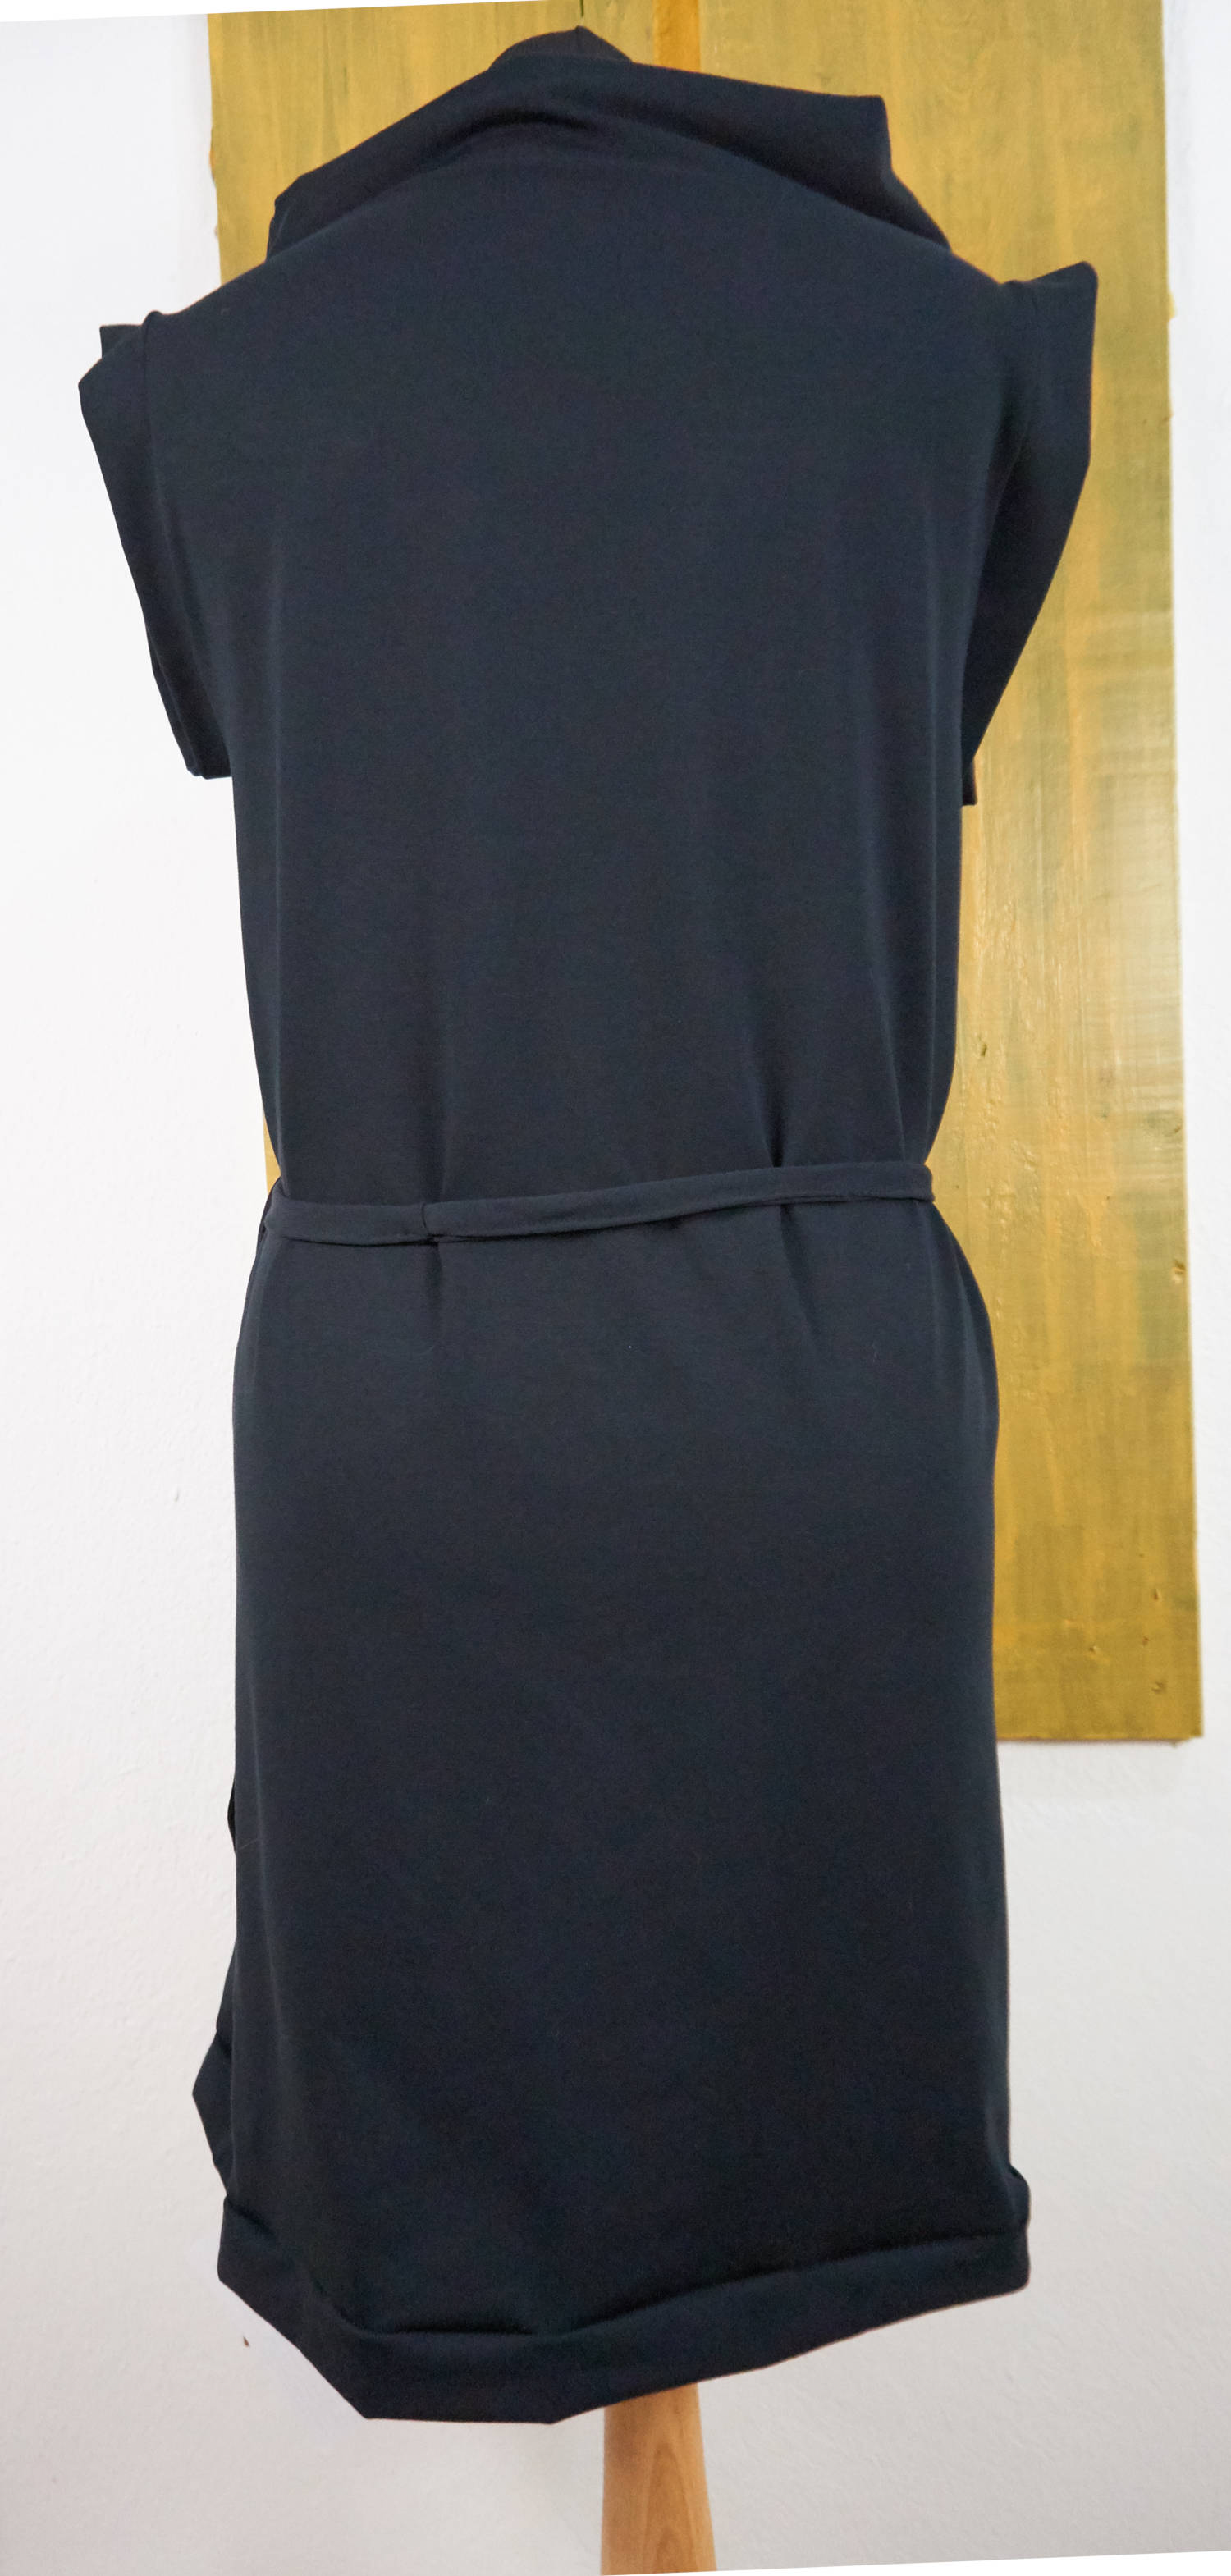 sleeveless dress with volcano neck